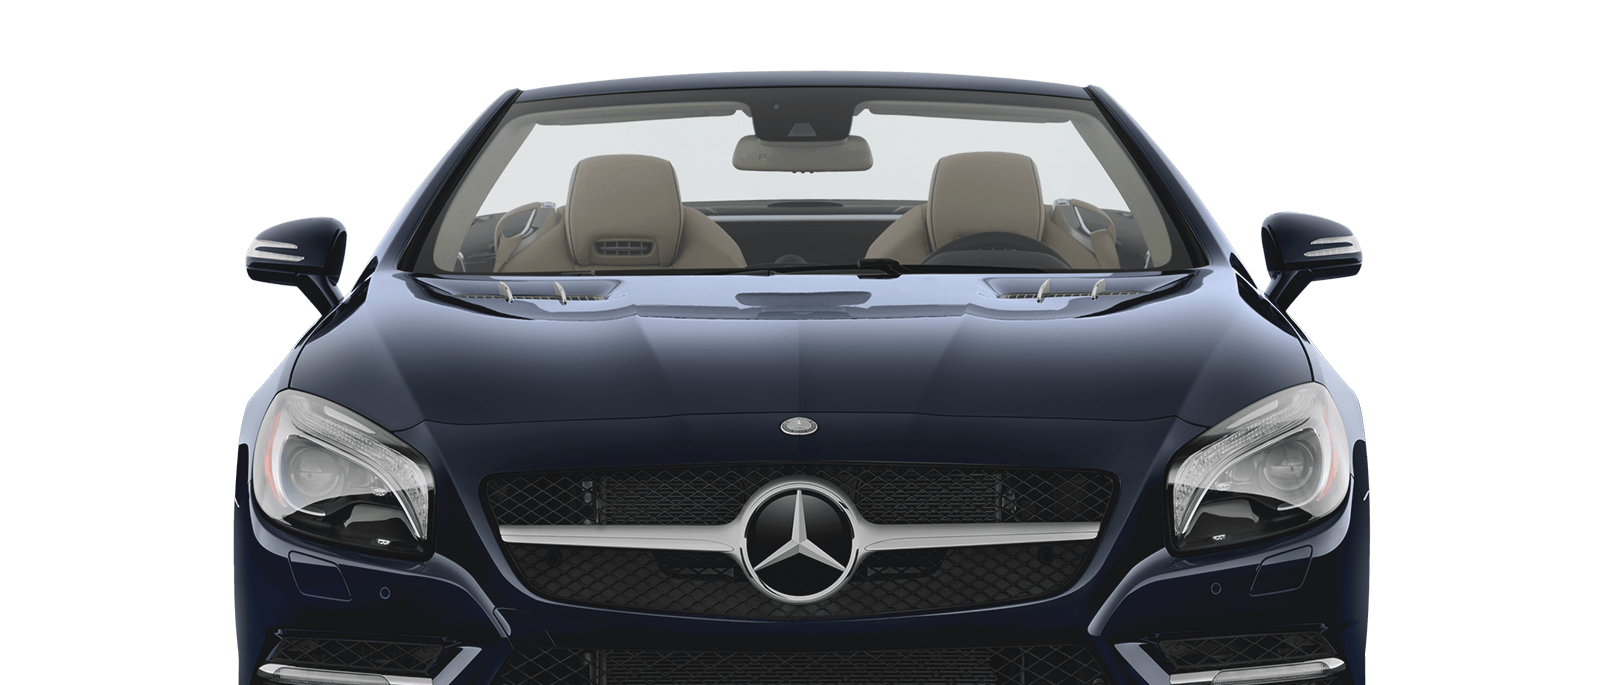 Mercedes benz sl400 car rental exotic car collection by for Enterprise mercedes benz